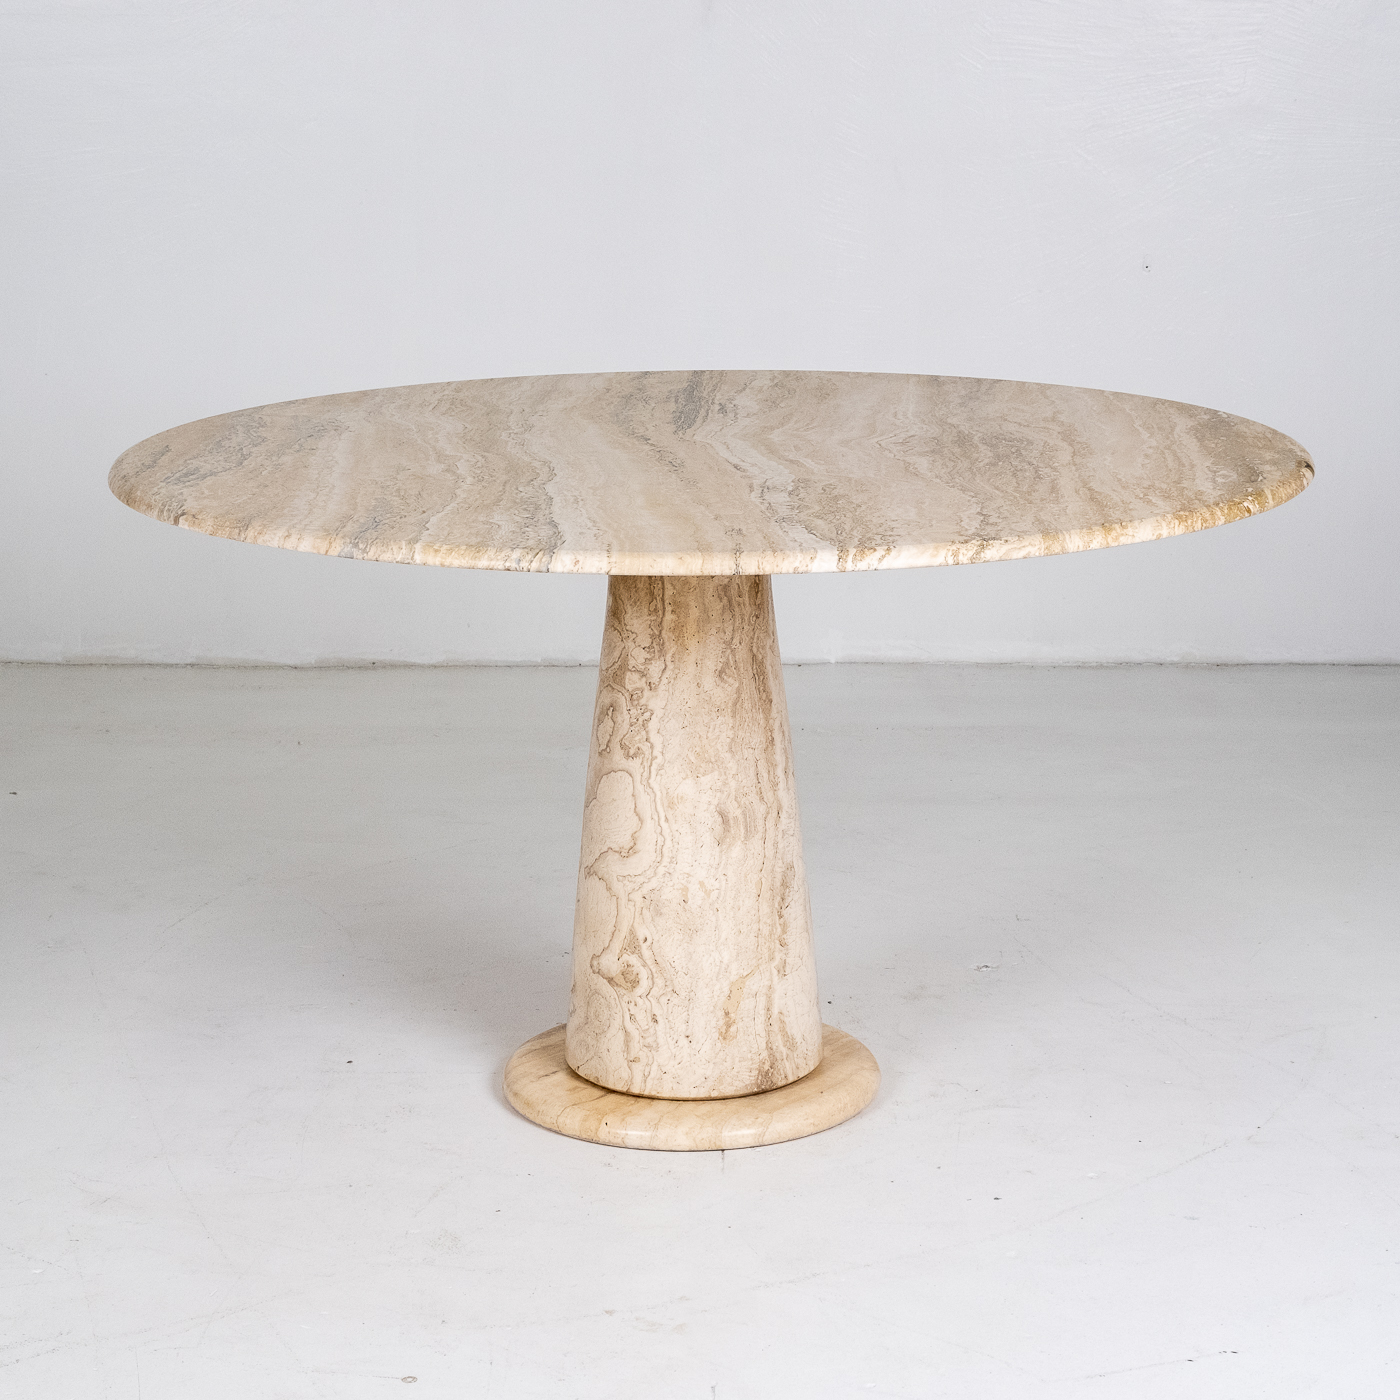 Round Travertine Dining Table In The Style Of The M1 By Angelo Mangiarotti, 1980s, Italy 76